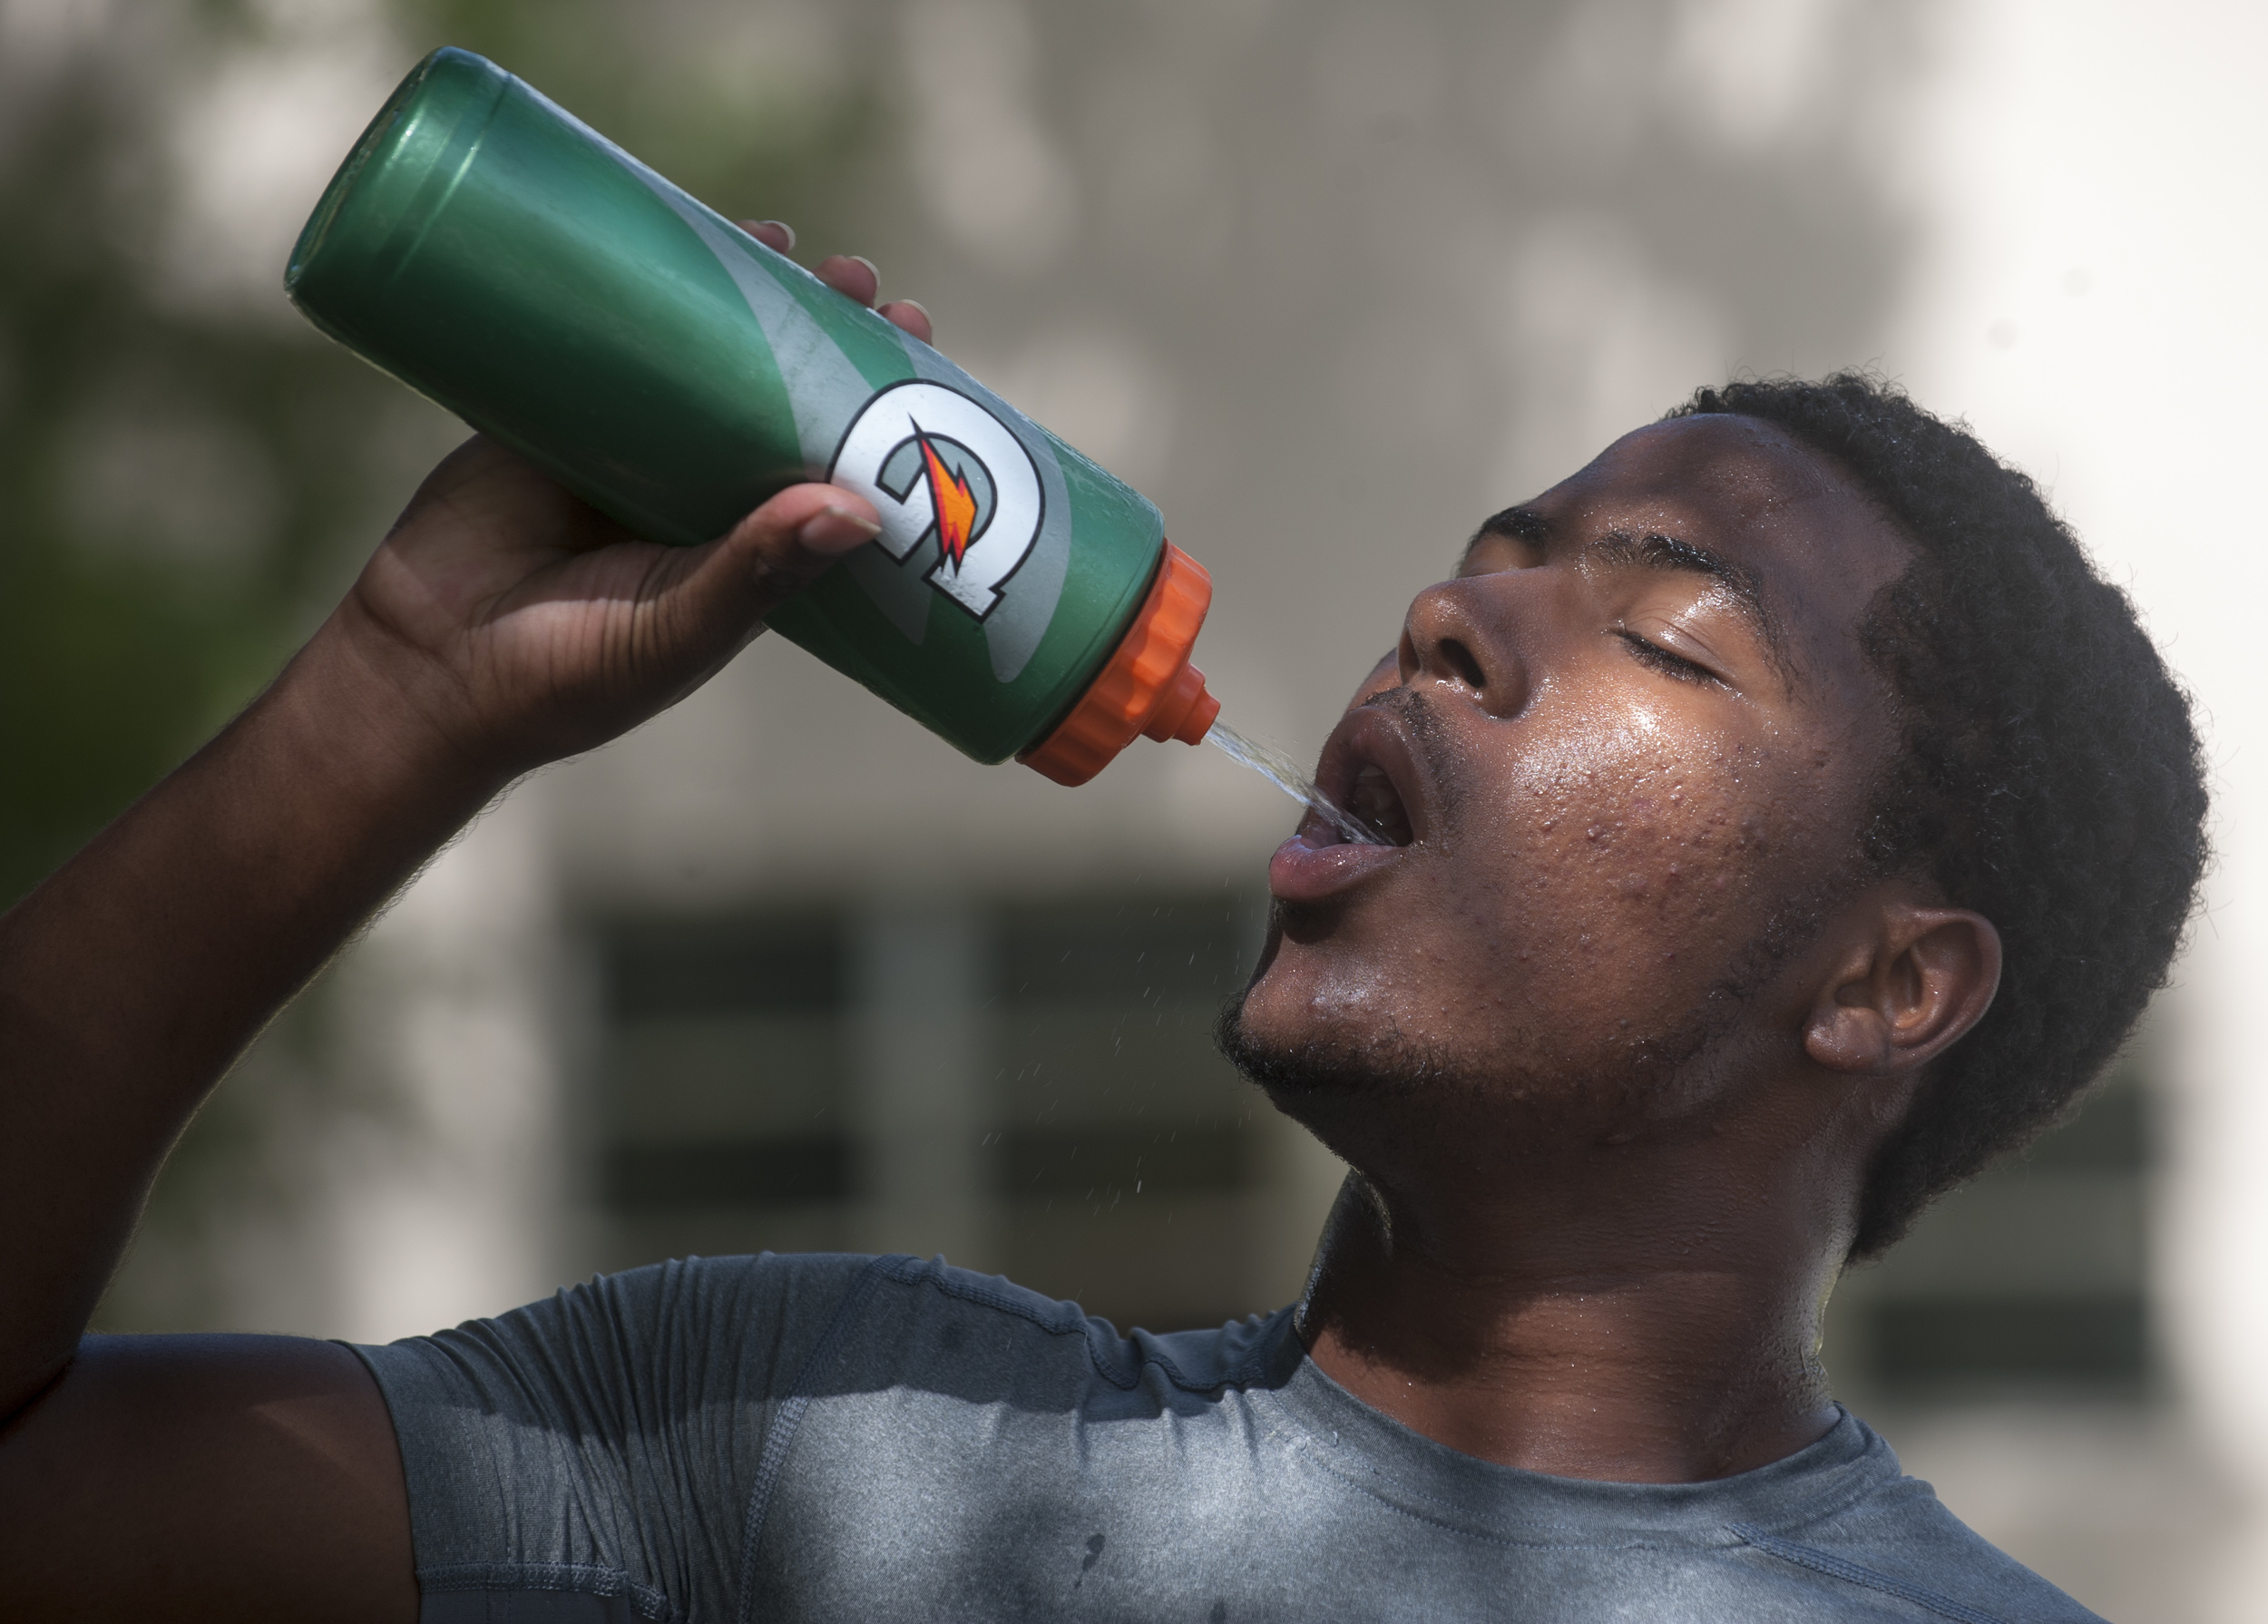 Flanagan high school junior wide receiver Shamar Nelson drinks water to cool off during the first practice of the high school football season at Flanagan High School on Monday, Aug. 1, 2016. The reigning state champions look to repeat again despite the loss of key players from last year.